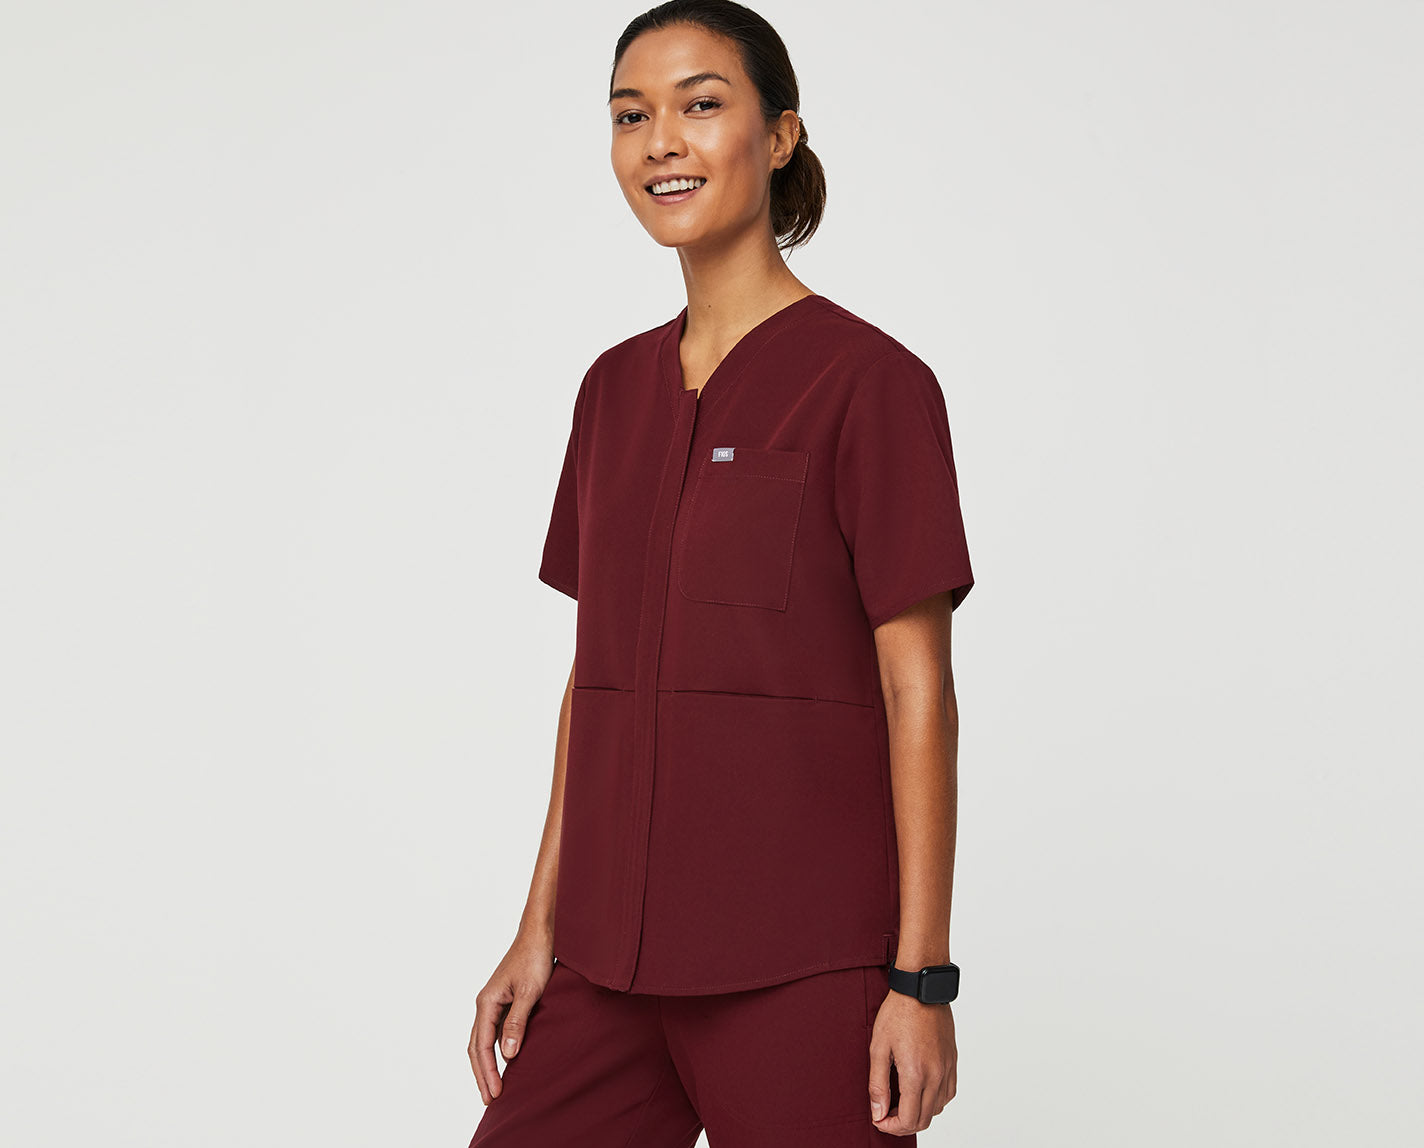 A relaxed V-neck top with all the right moves. It's designed with three pockets for everything you need, plus a full zip v-neck, and a slightly curved high-low hem with side slits for better movement on the go.